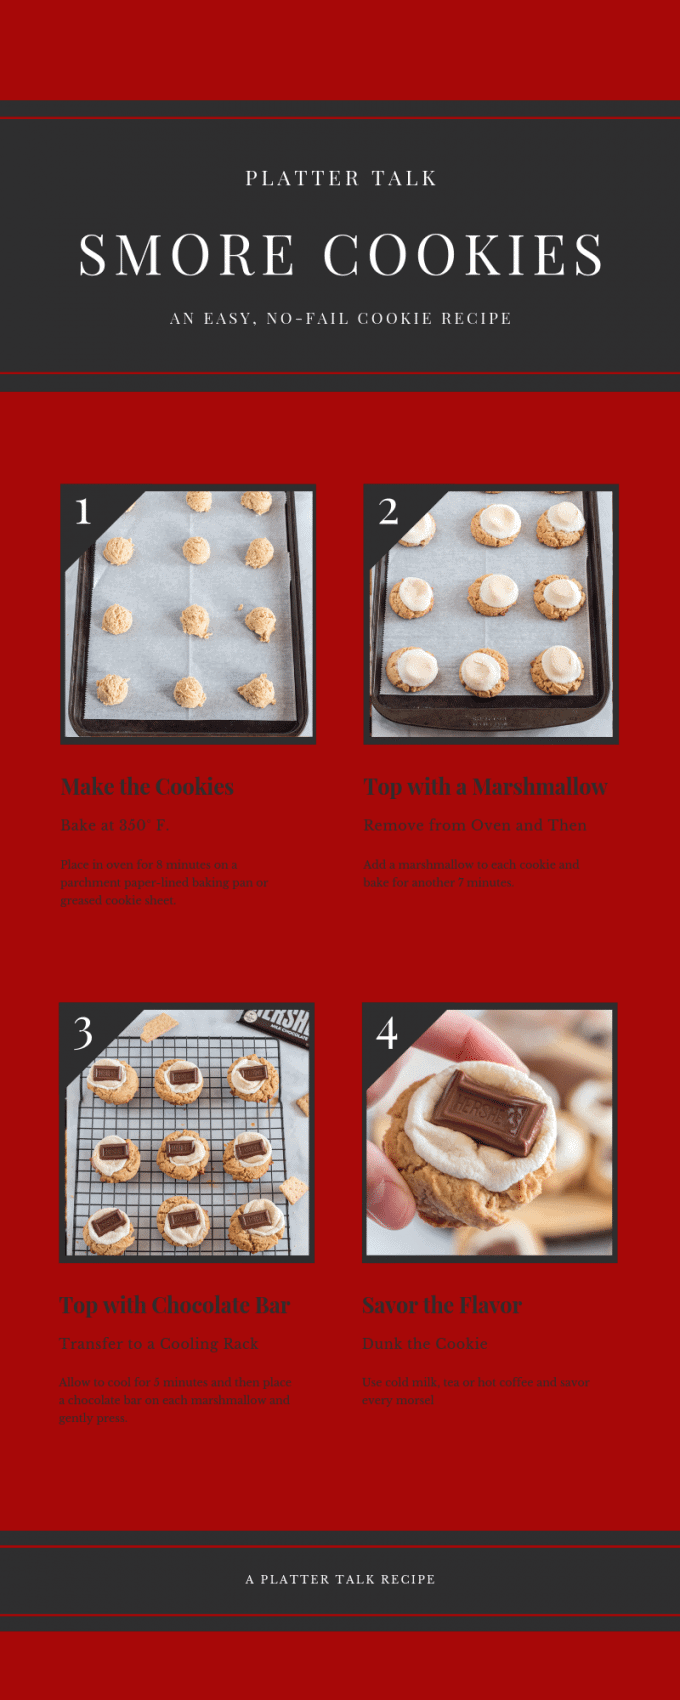 Process for making s'more cookies.